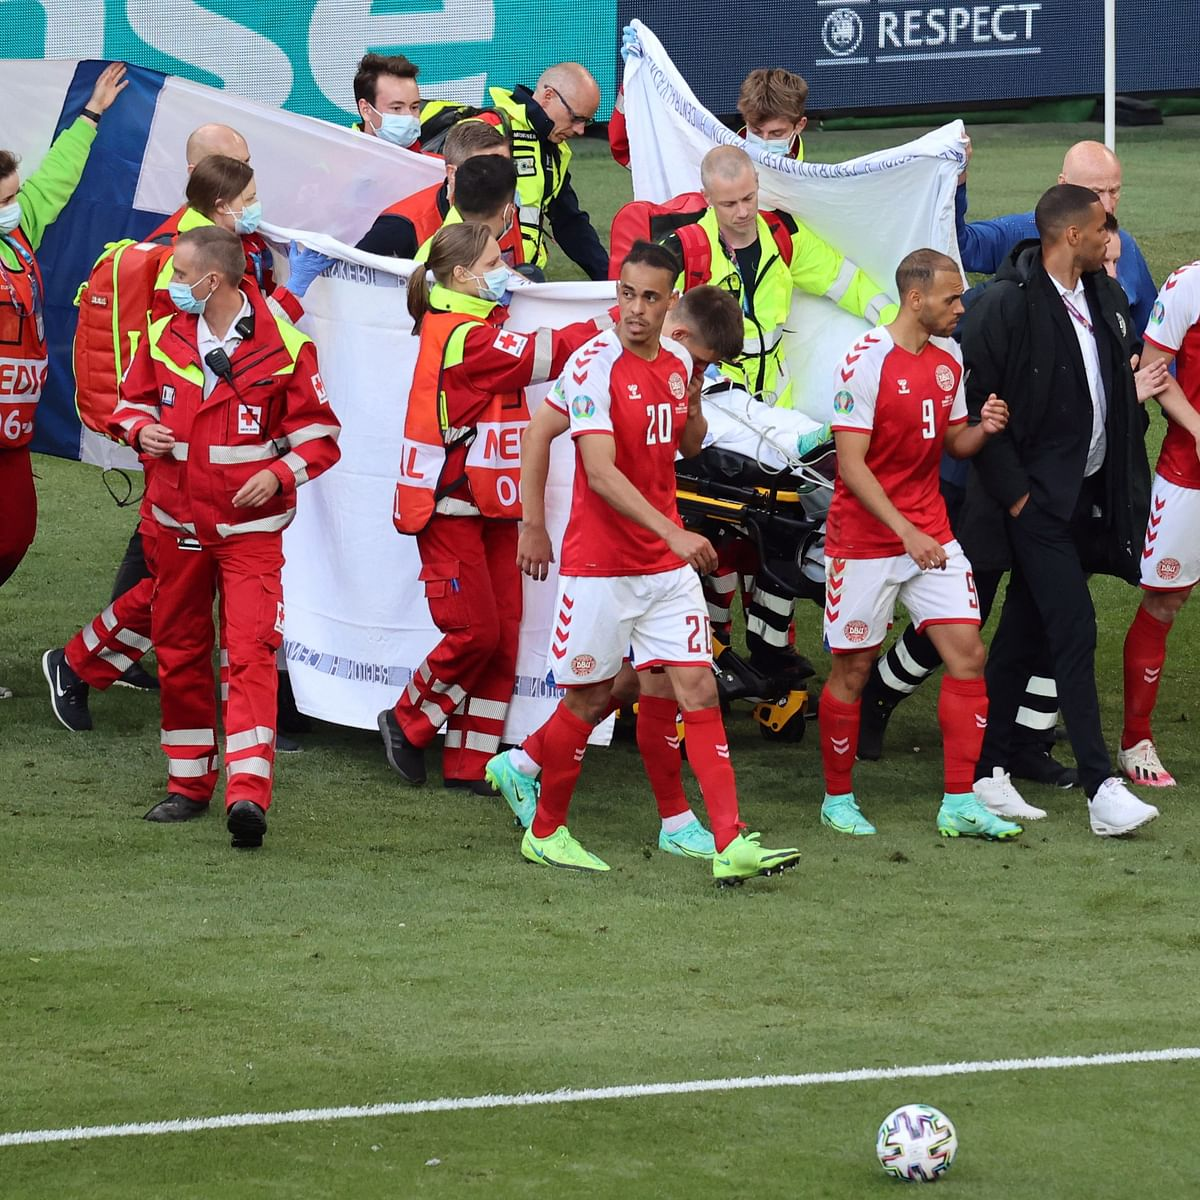 Denmark's Christian Eriksen rushed to hospital after collapse during Euro 2020 match - Here's what we know so far